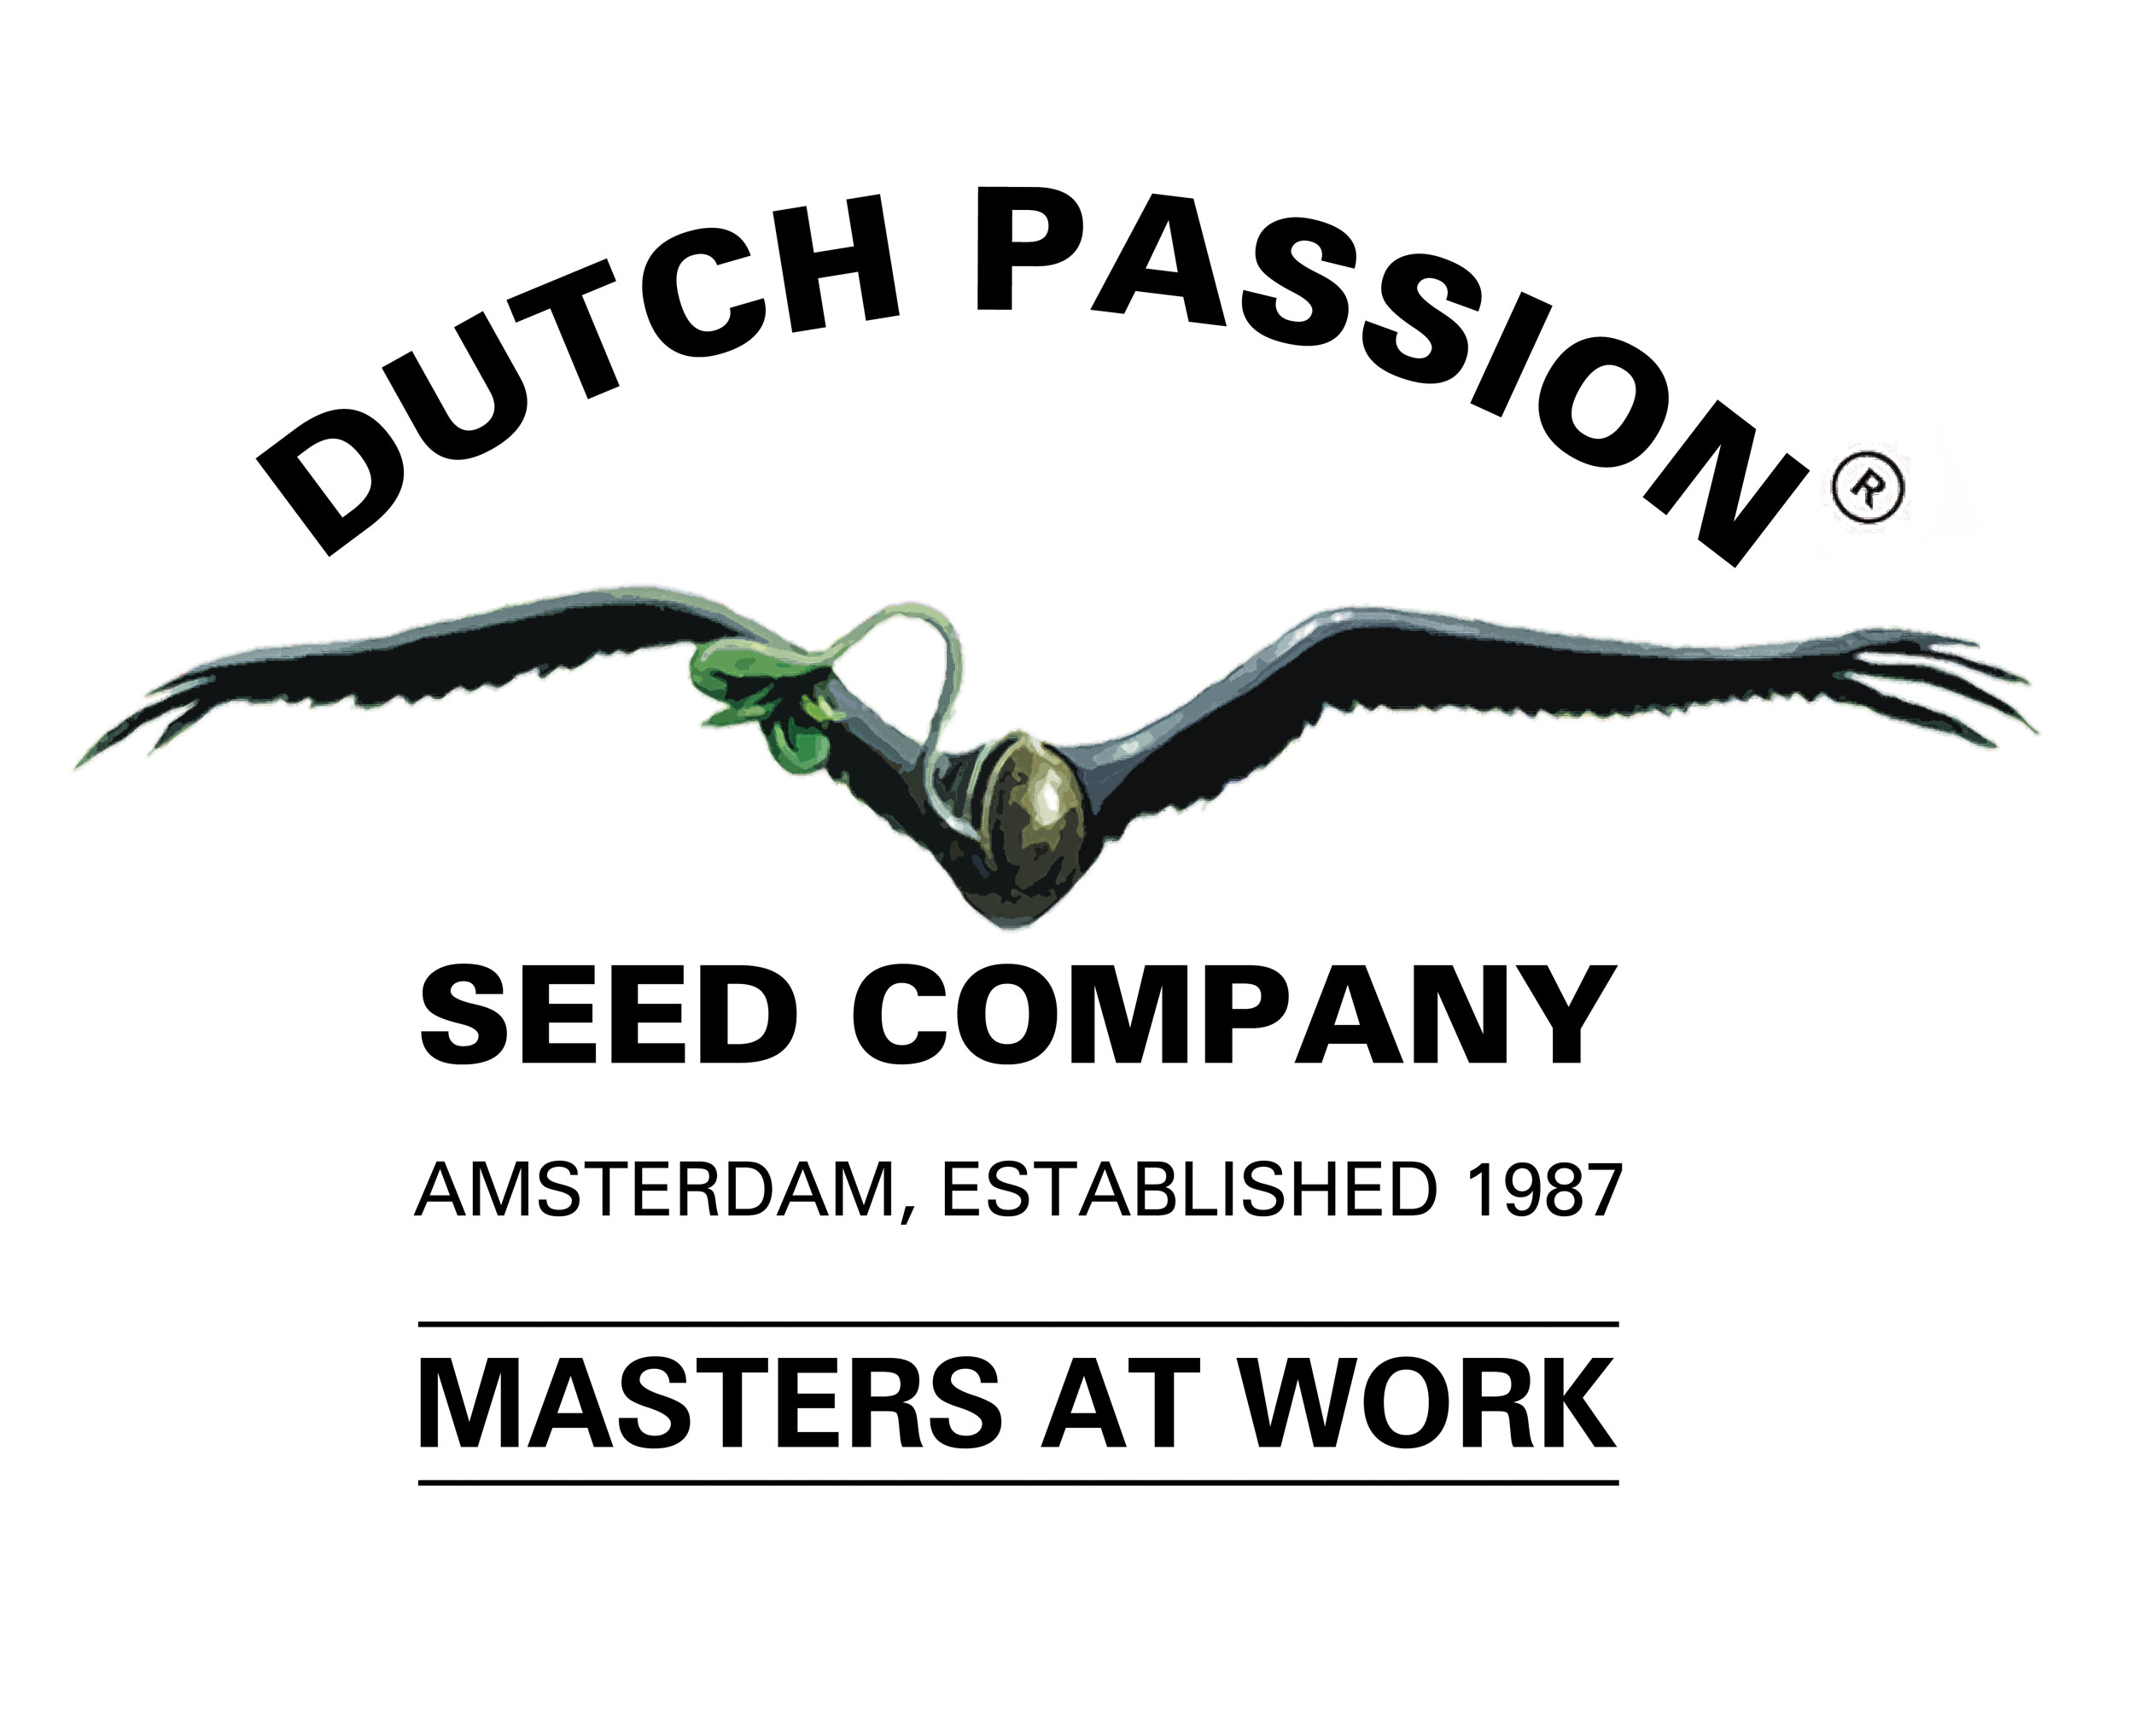 Dutch Passion Colour mix 1 FD, PA, SH 6ks Outdoor